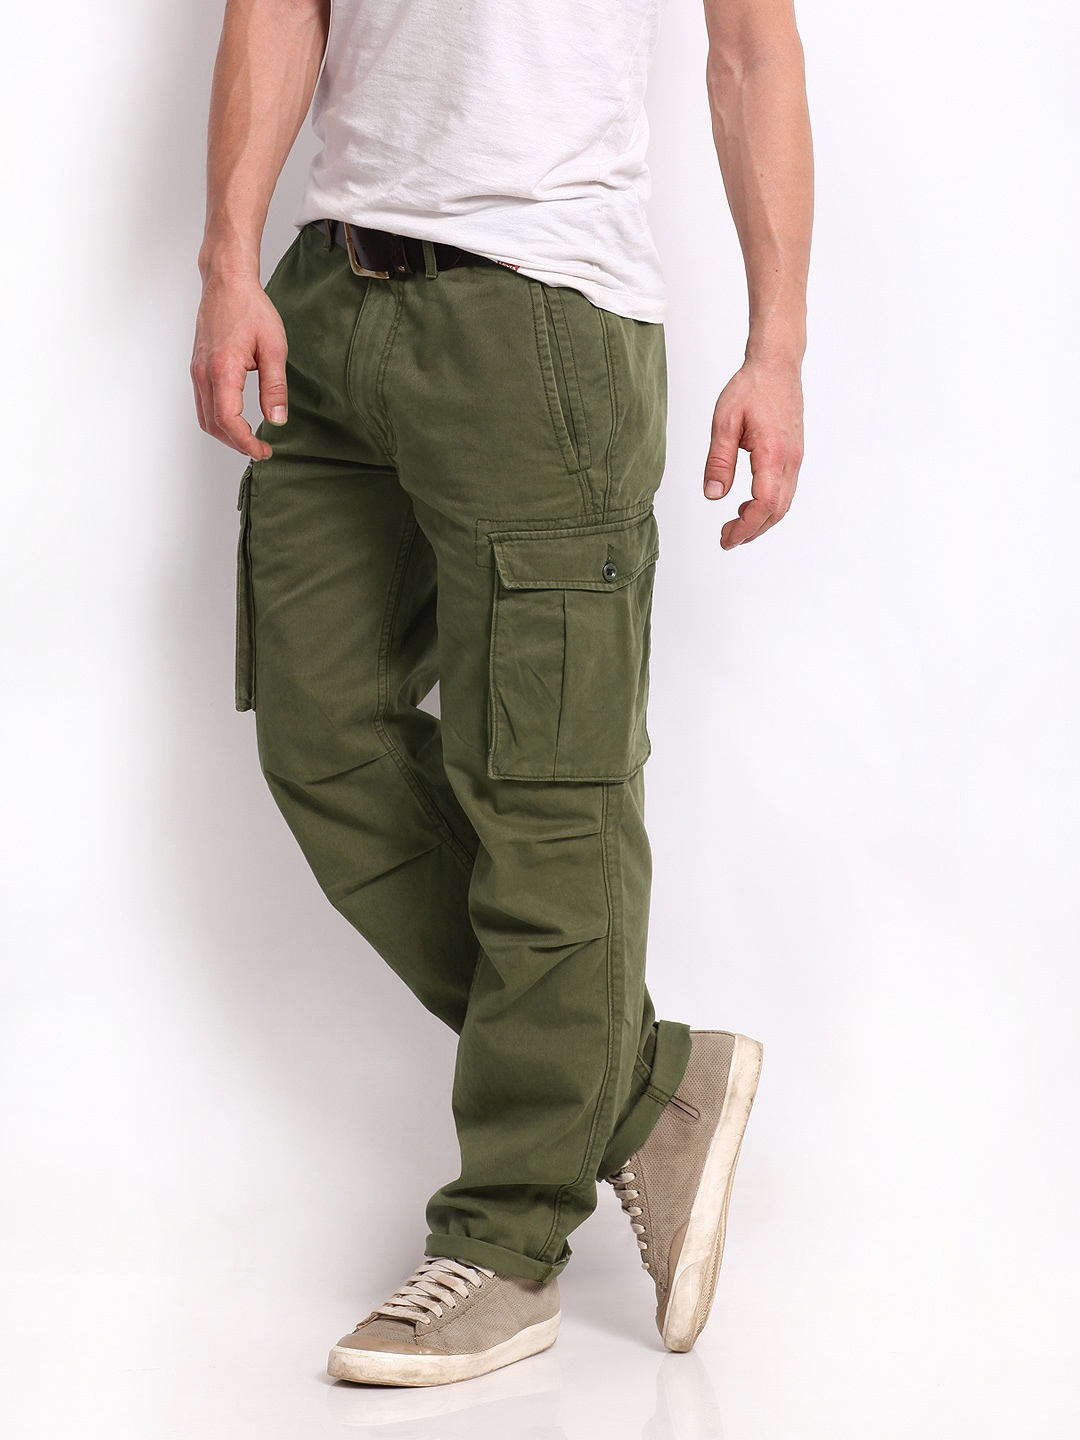 ... Cargo Trousers 1287627 for men online in india on Myntra at Yebhi.com